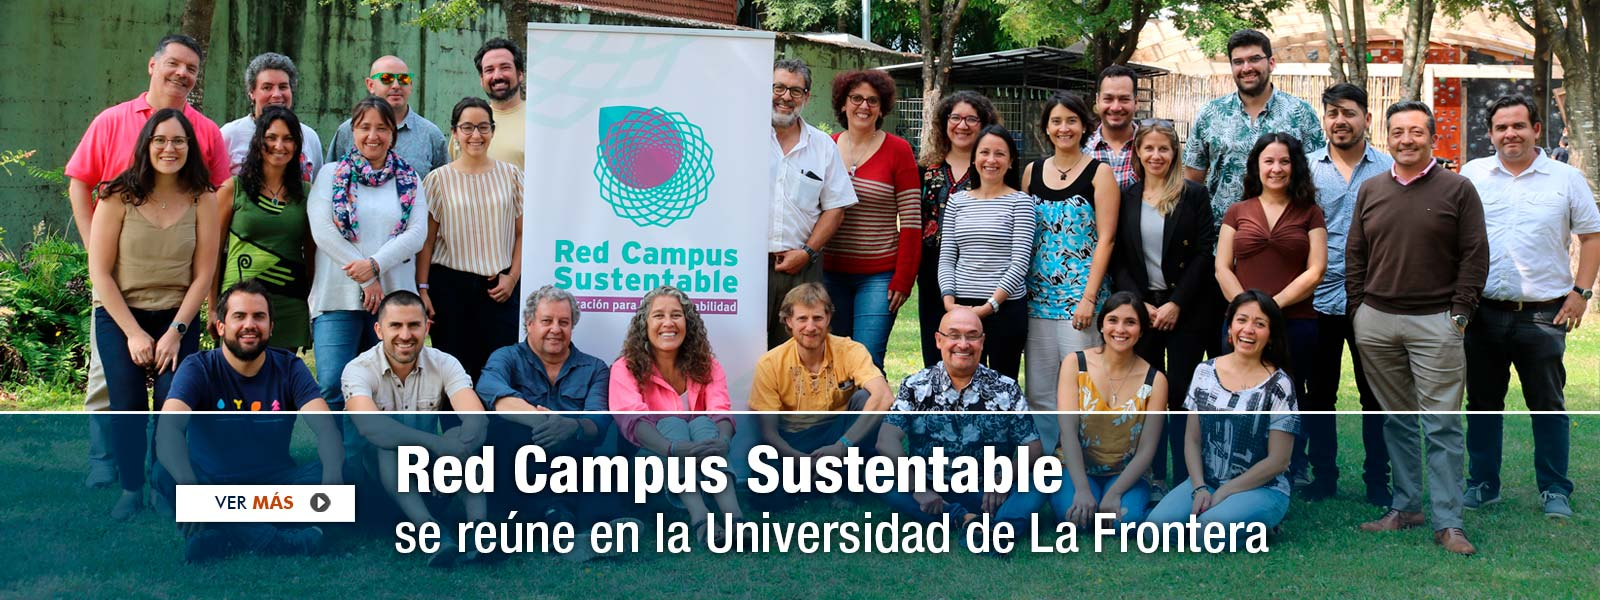 Red Campus Sustentable PROGRAMADO BAJAR